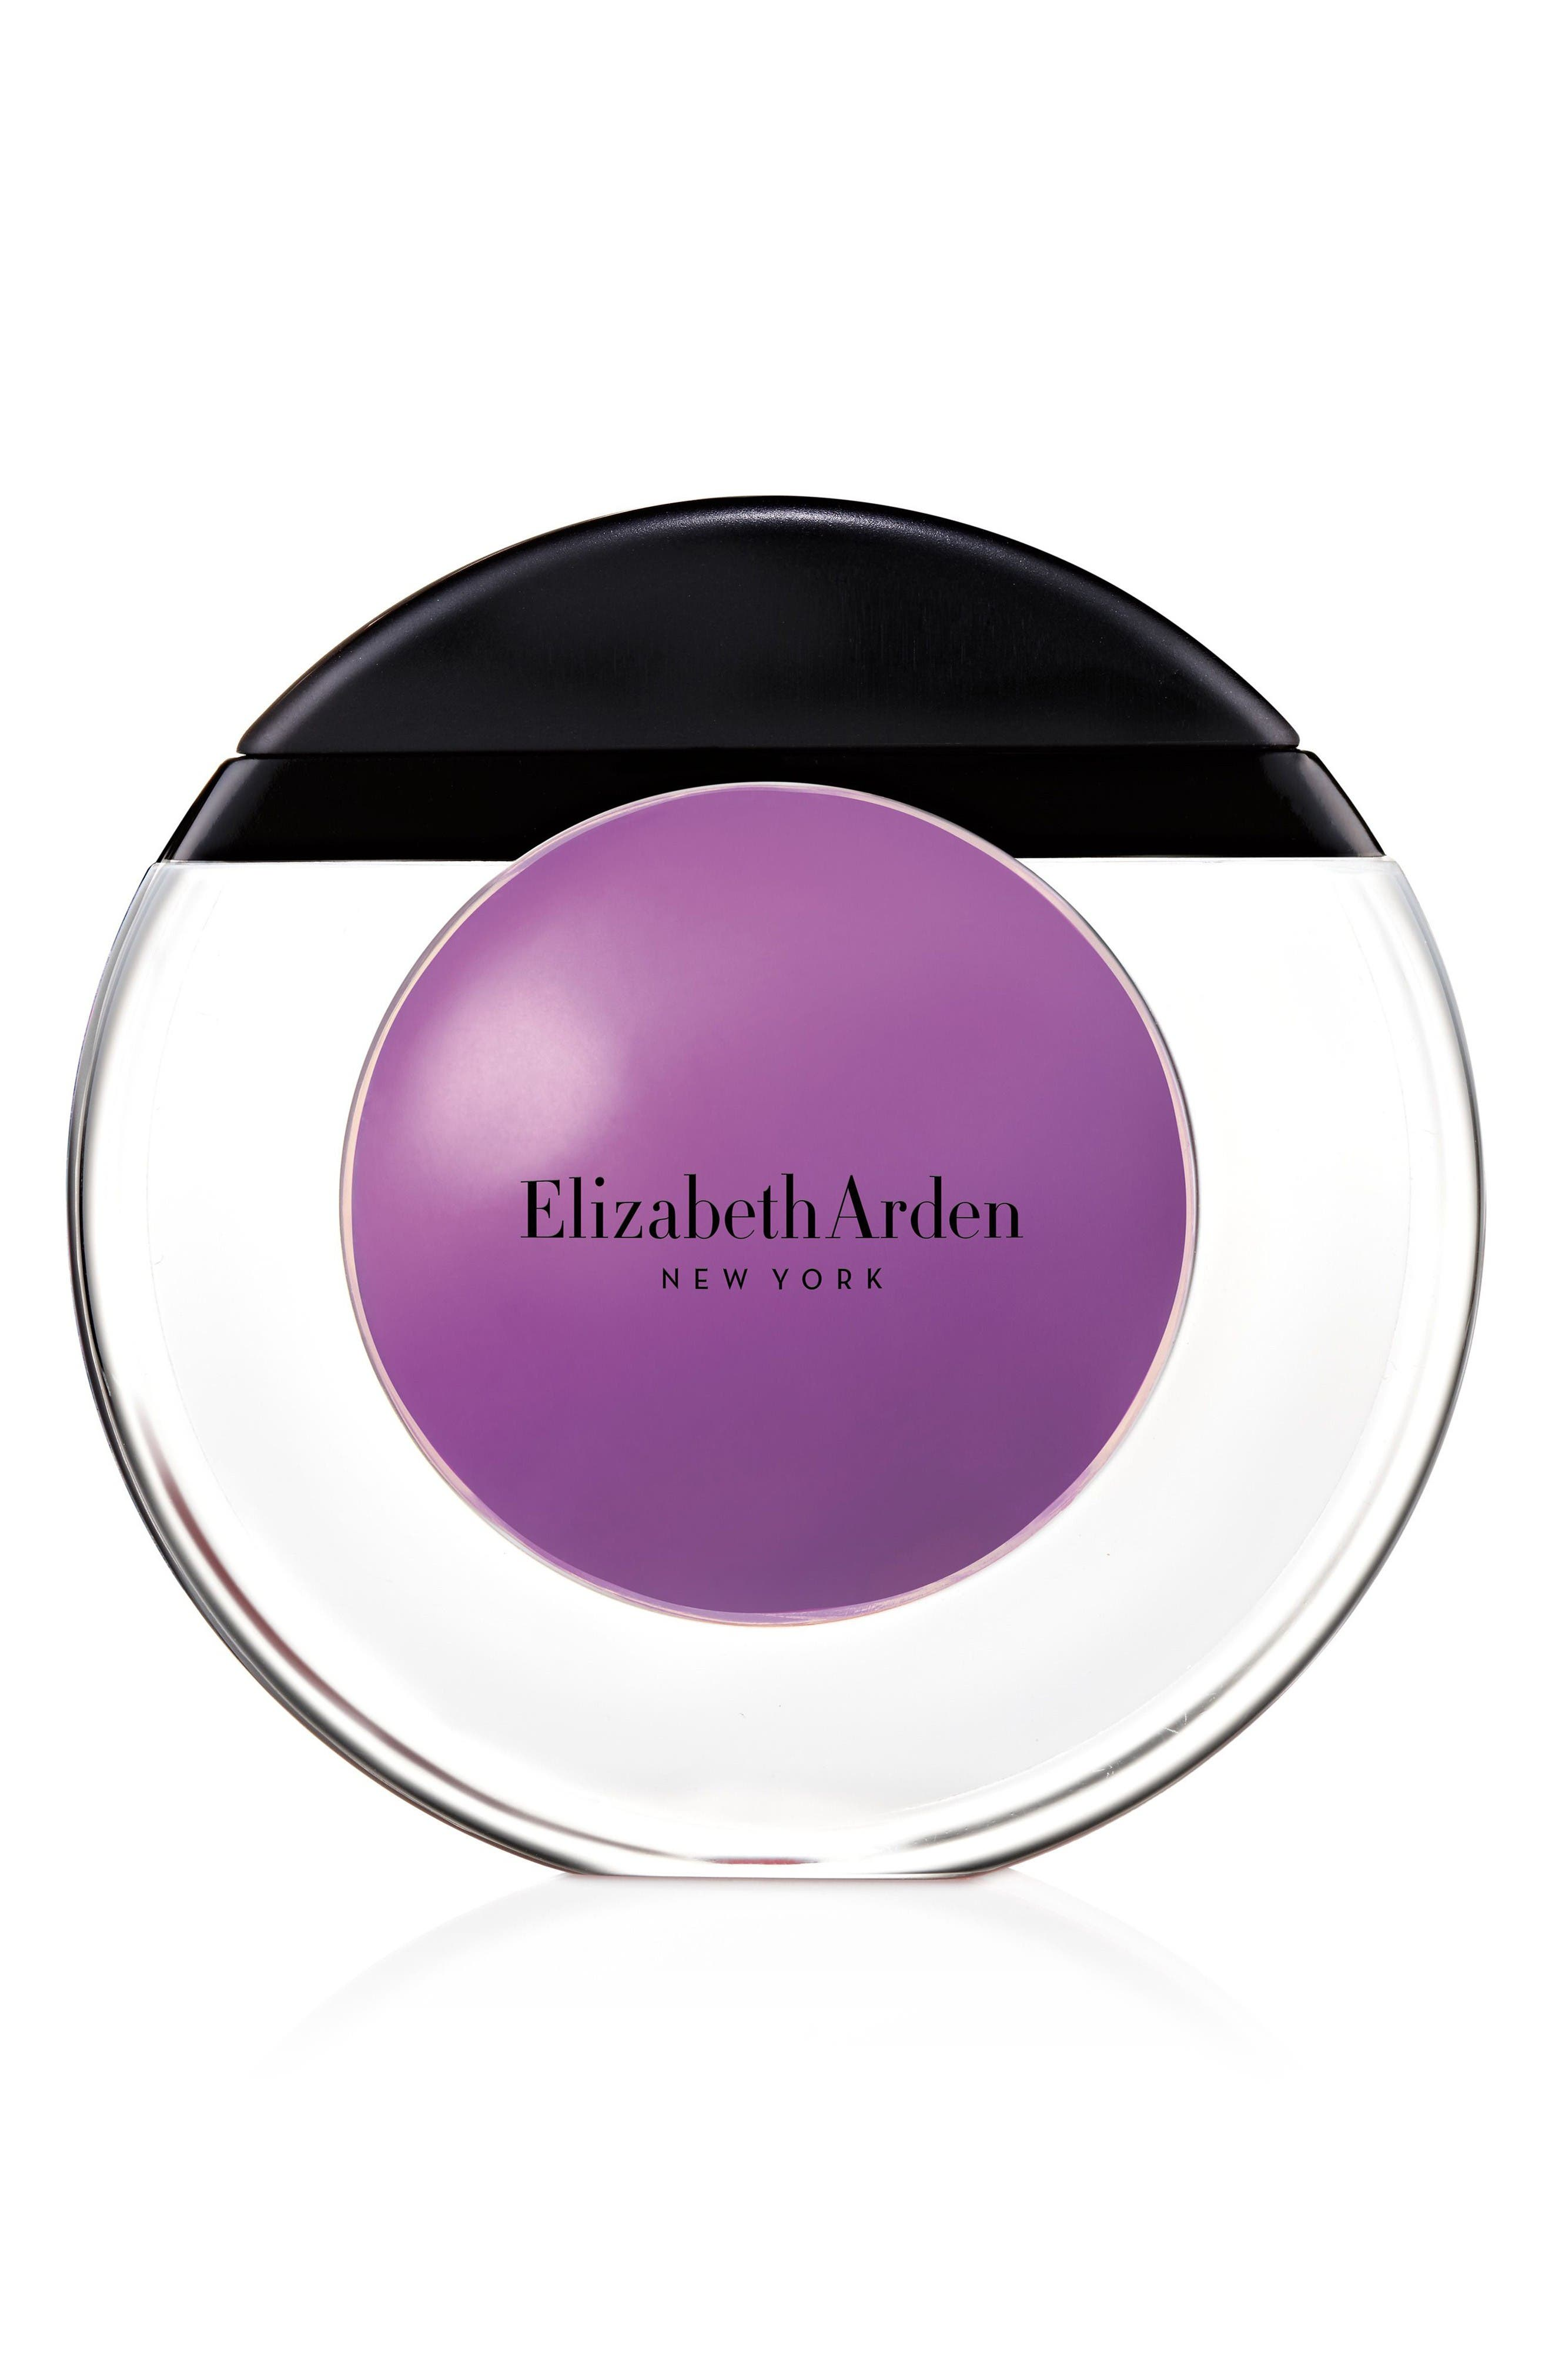 ELIZABETH ARDEN SHEER KISS LIP OIL